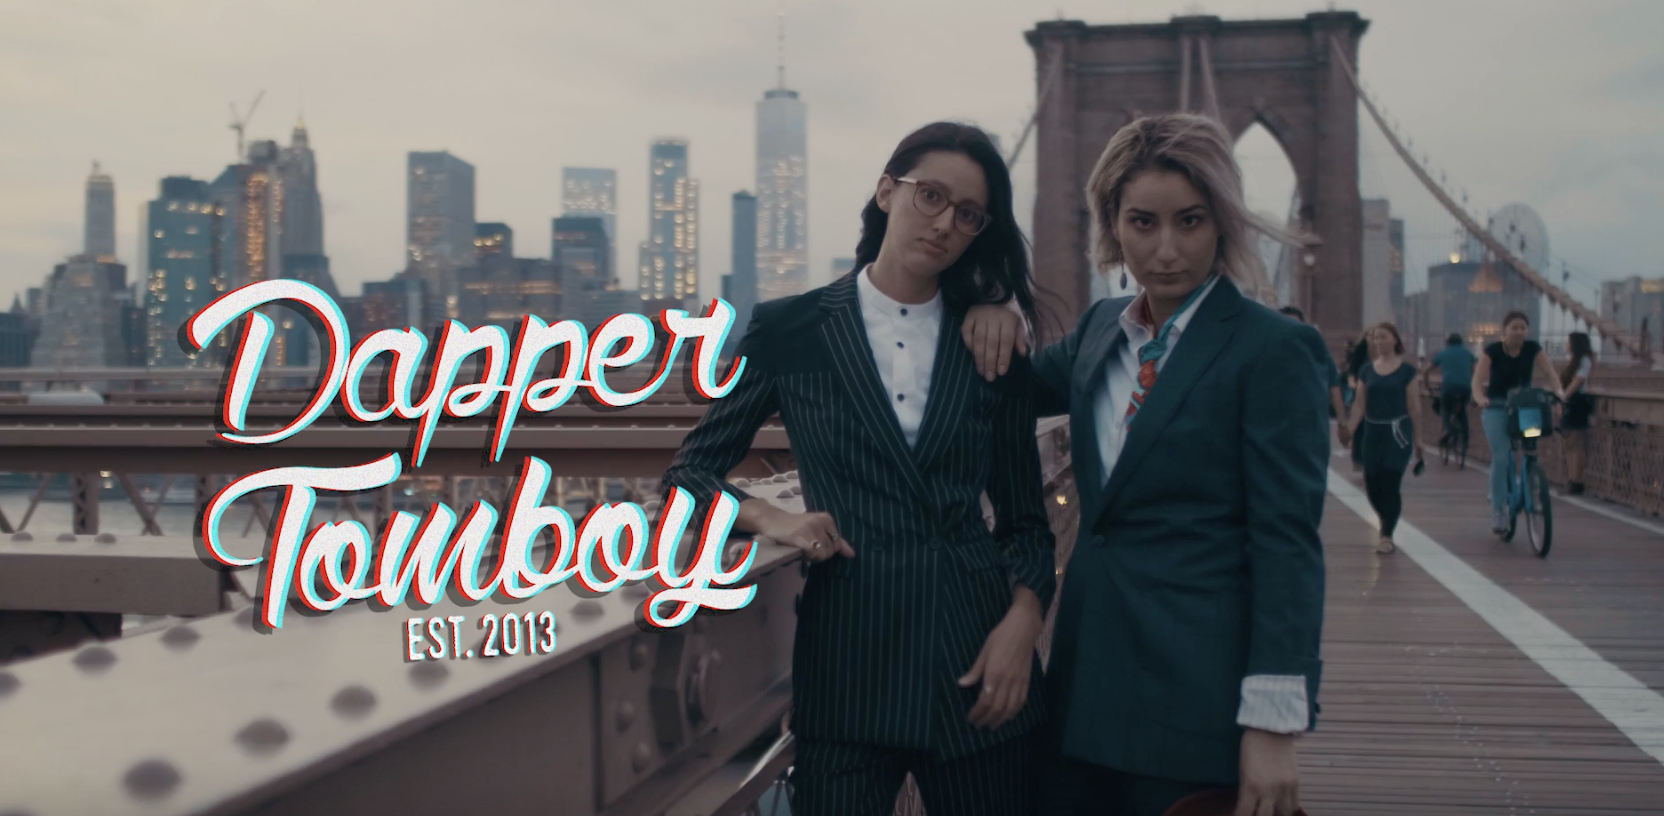 Dapper Tomboy - Promo - Director, Producer